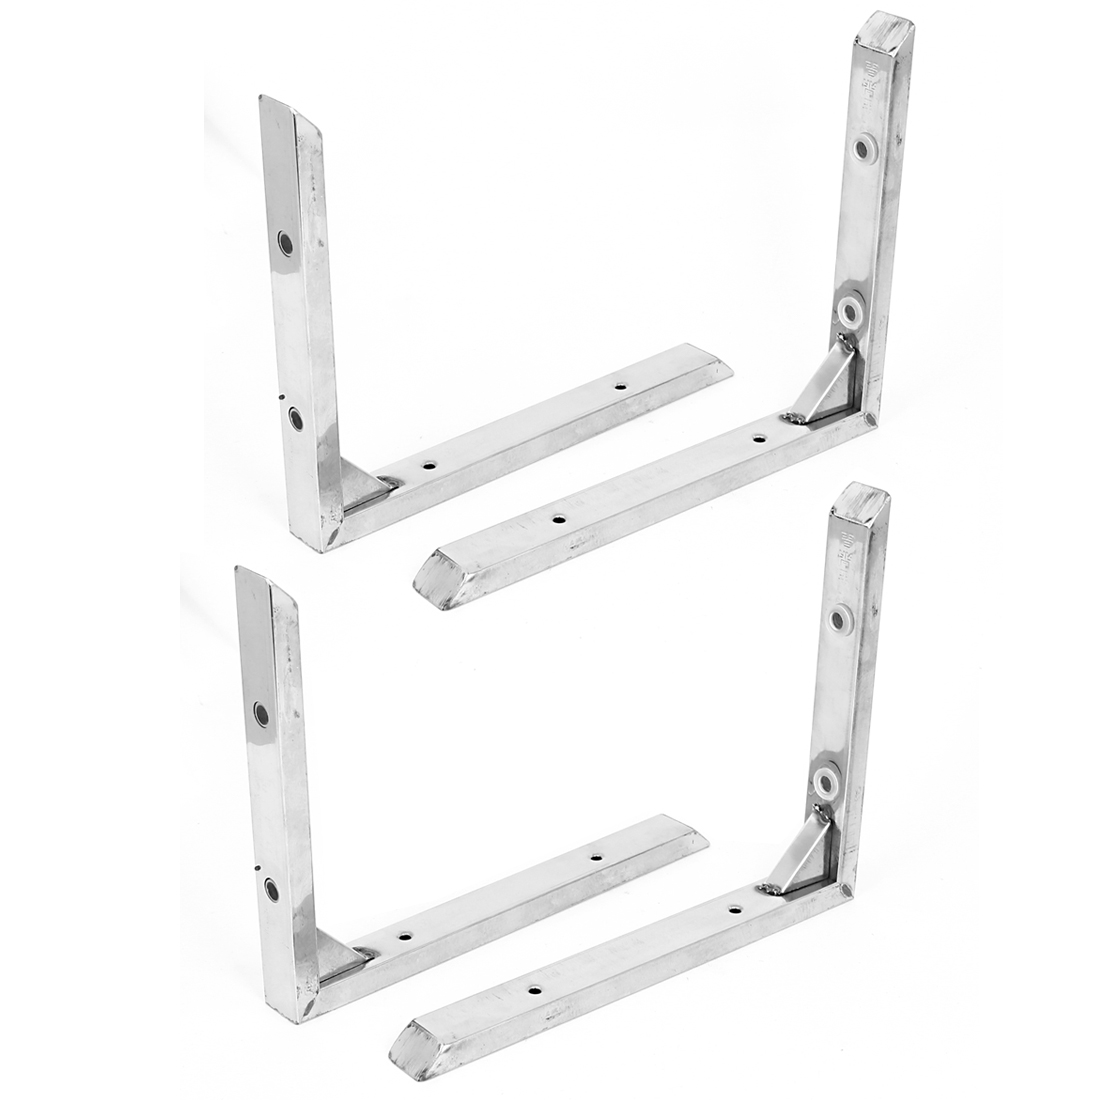 "4pcs 2.5cm Wide Stainless Steel L Shaped 90 Degree Angle Shelf Brackets 10"" x 8"""